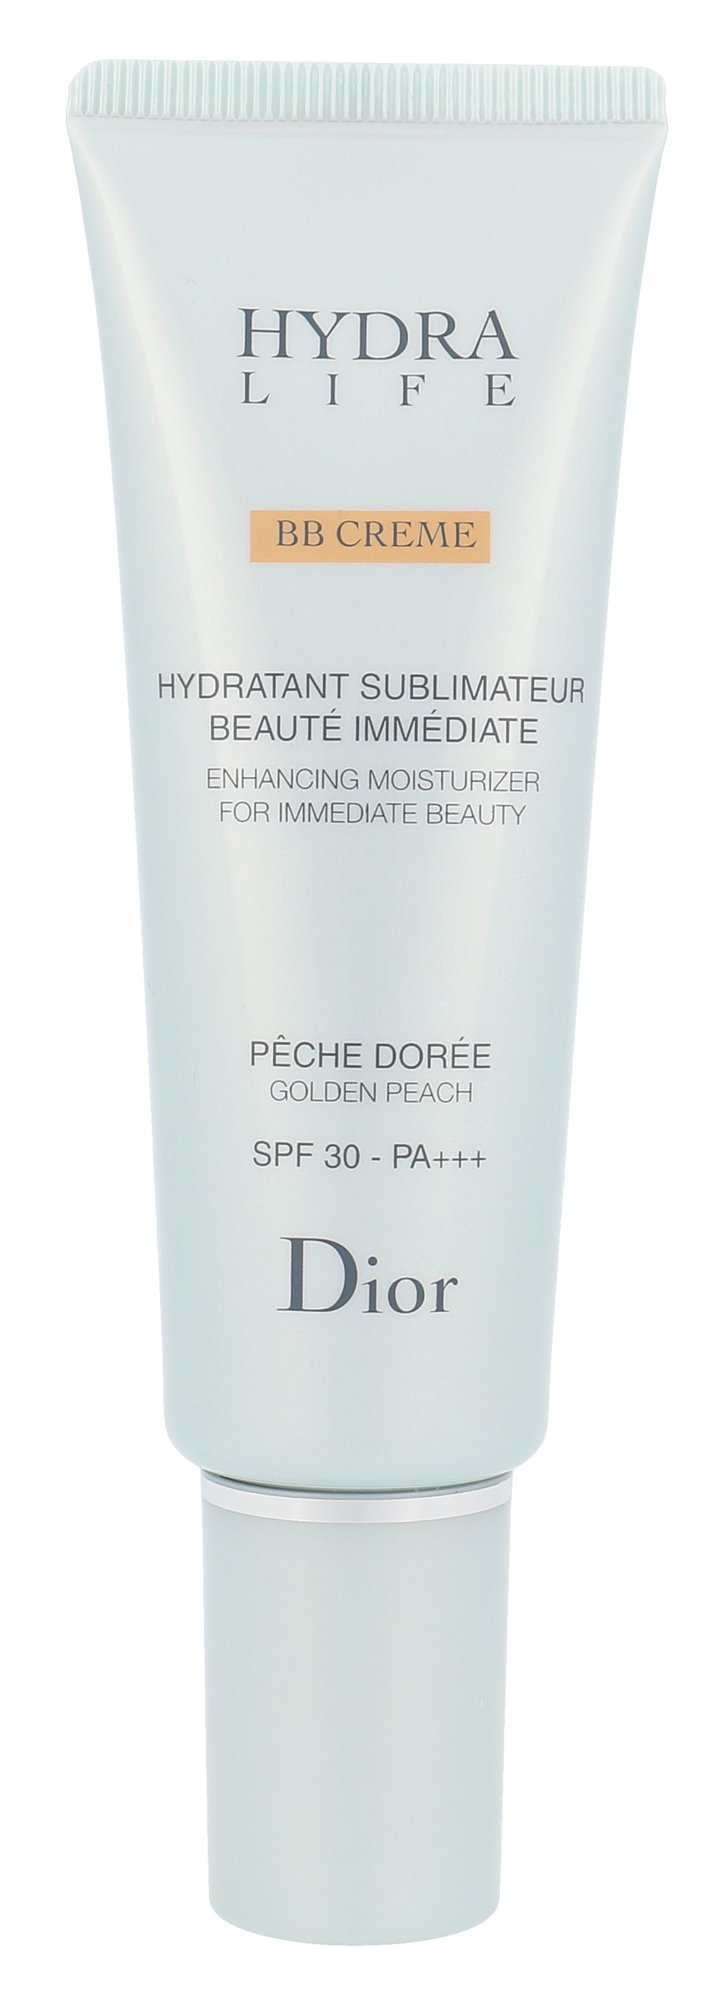 Christian Dior Hydra Life Cosmetic 50ml 02 Golden Peach